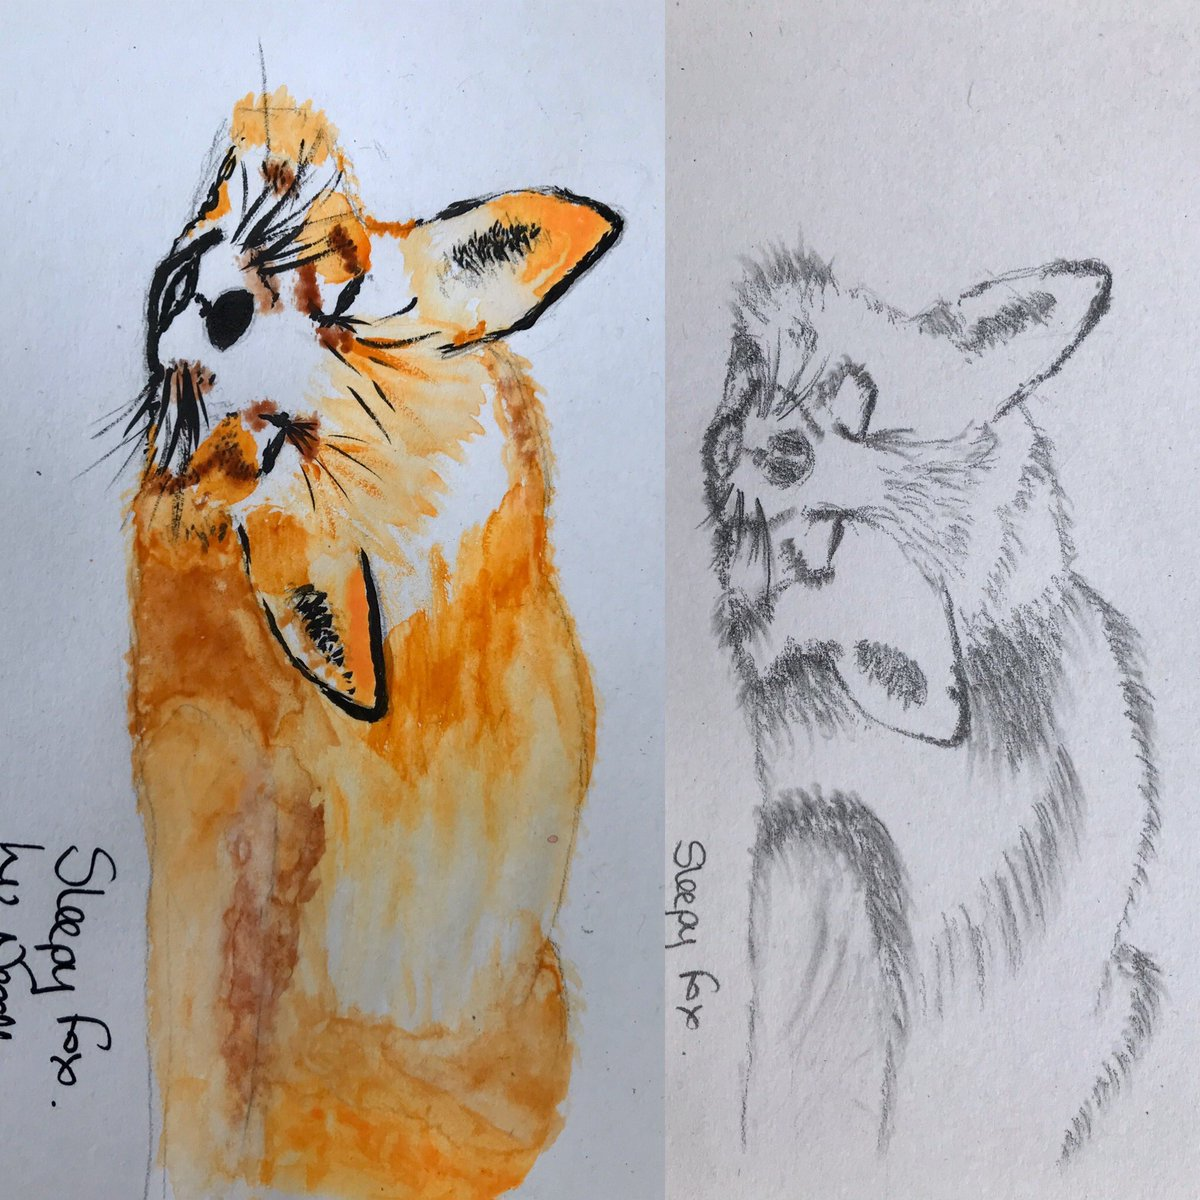 Sleepy fox in graphite and in water colours and ink drawn a week apart.  People don't necessarily recognise the top image as a fox without its distinctive, vibrant coat #Contrast #Painting #InTheMomentpic.twitter.com/fmDtEMKRy1